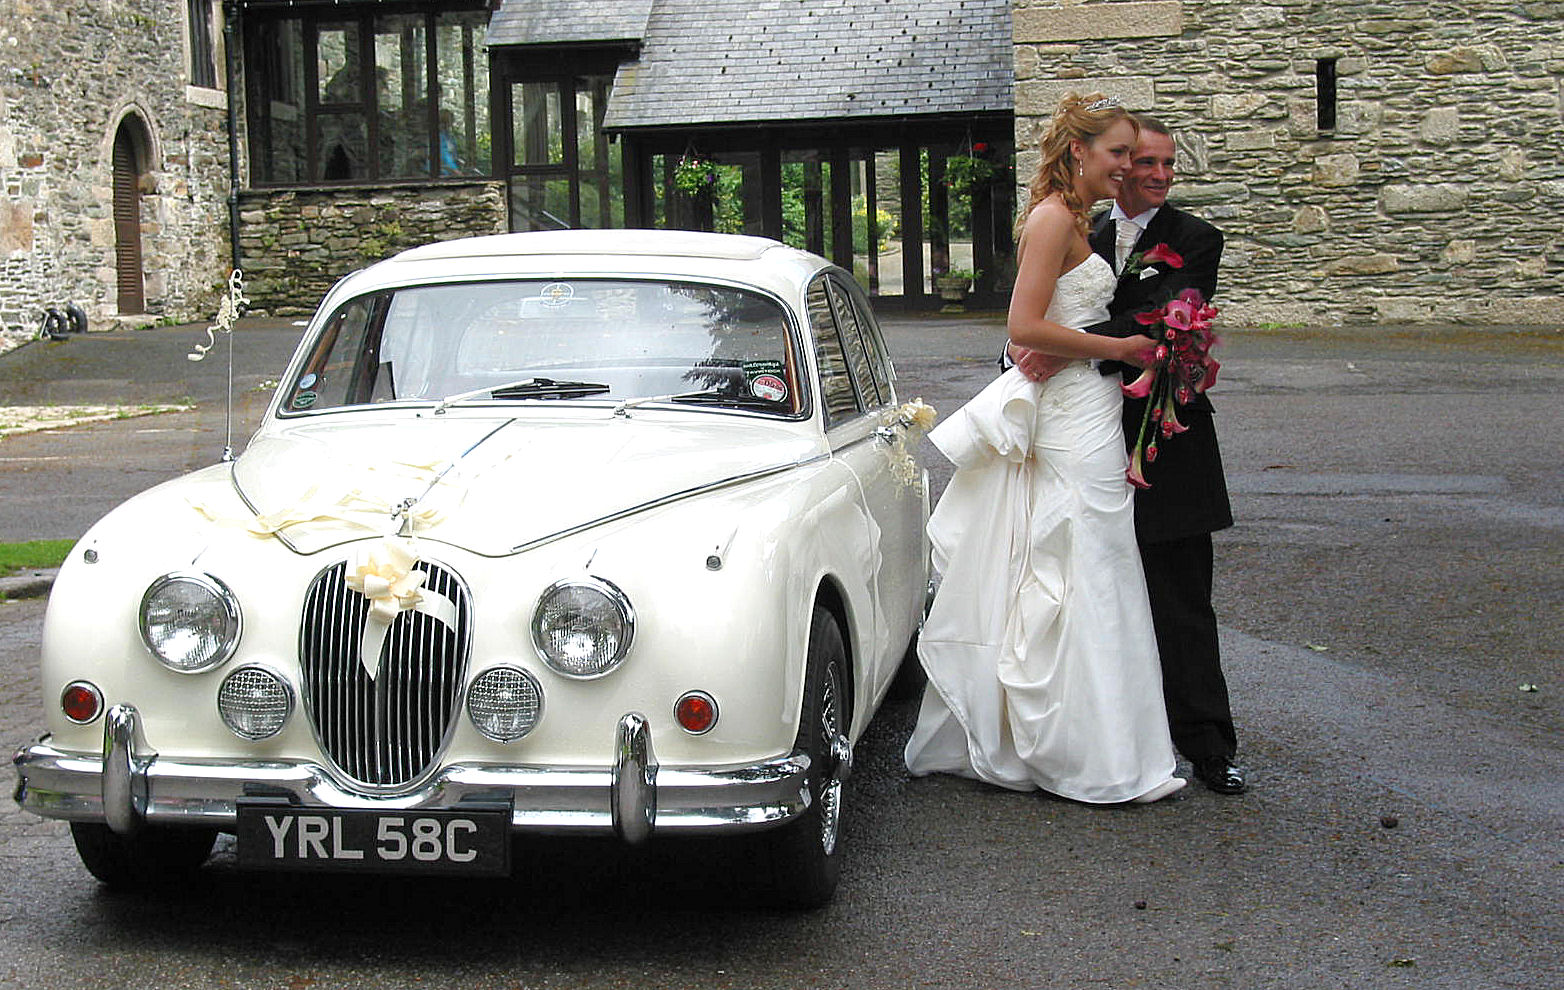 Caroline and Allan, now Mr. and Mrs. with their white Jaguar, wedding car.